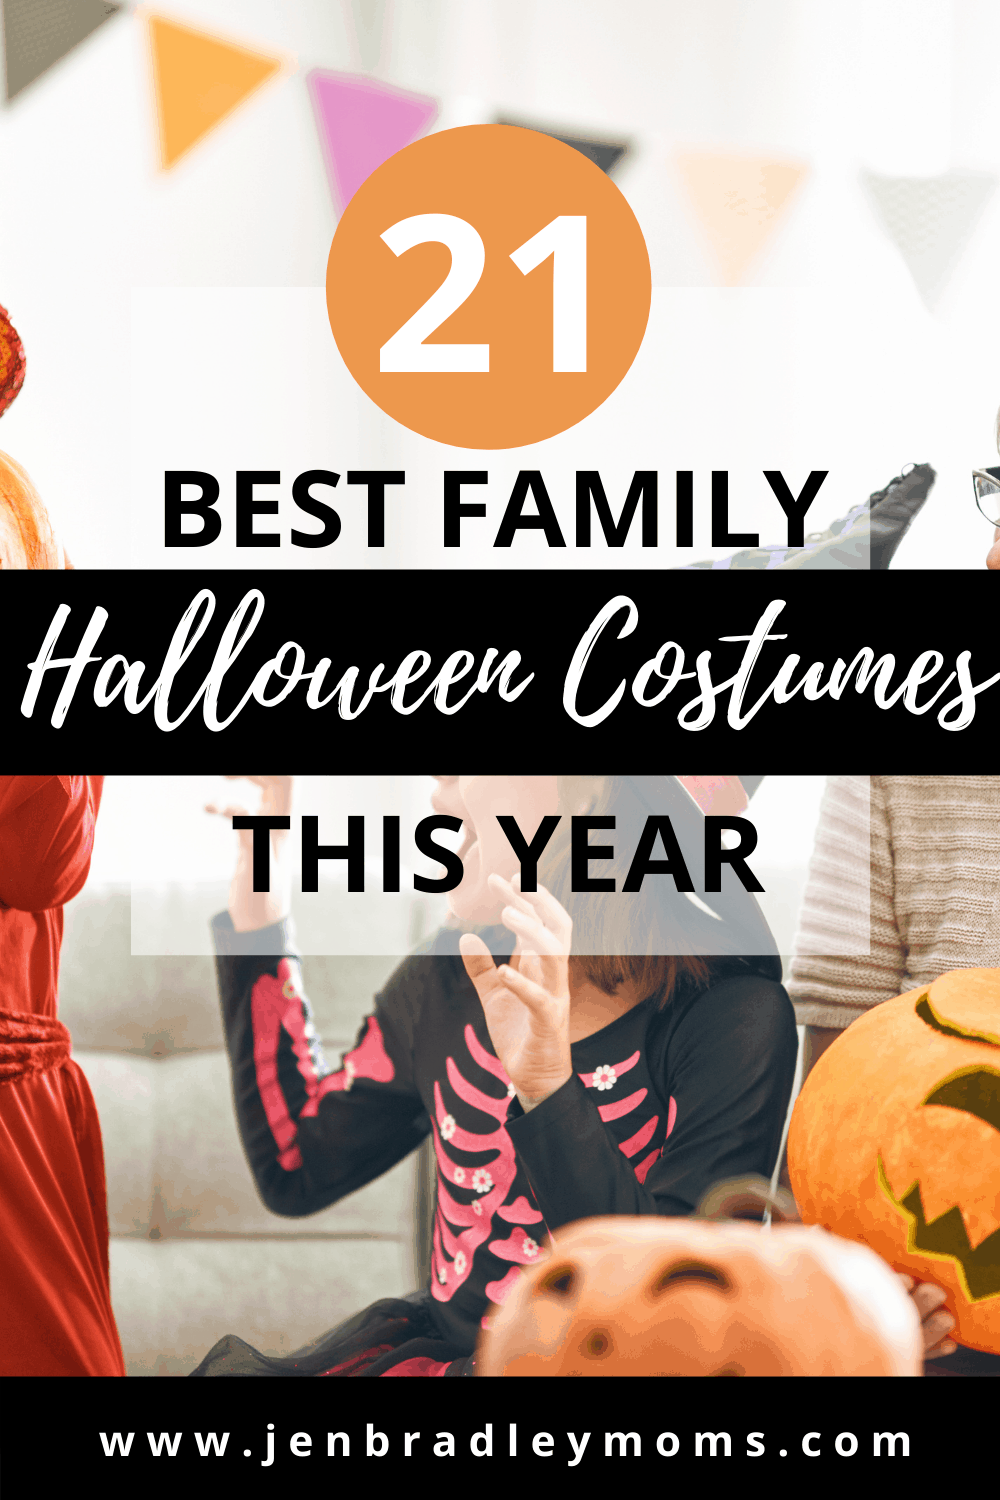 The 21 Best Family Halloween Costumes this Year